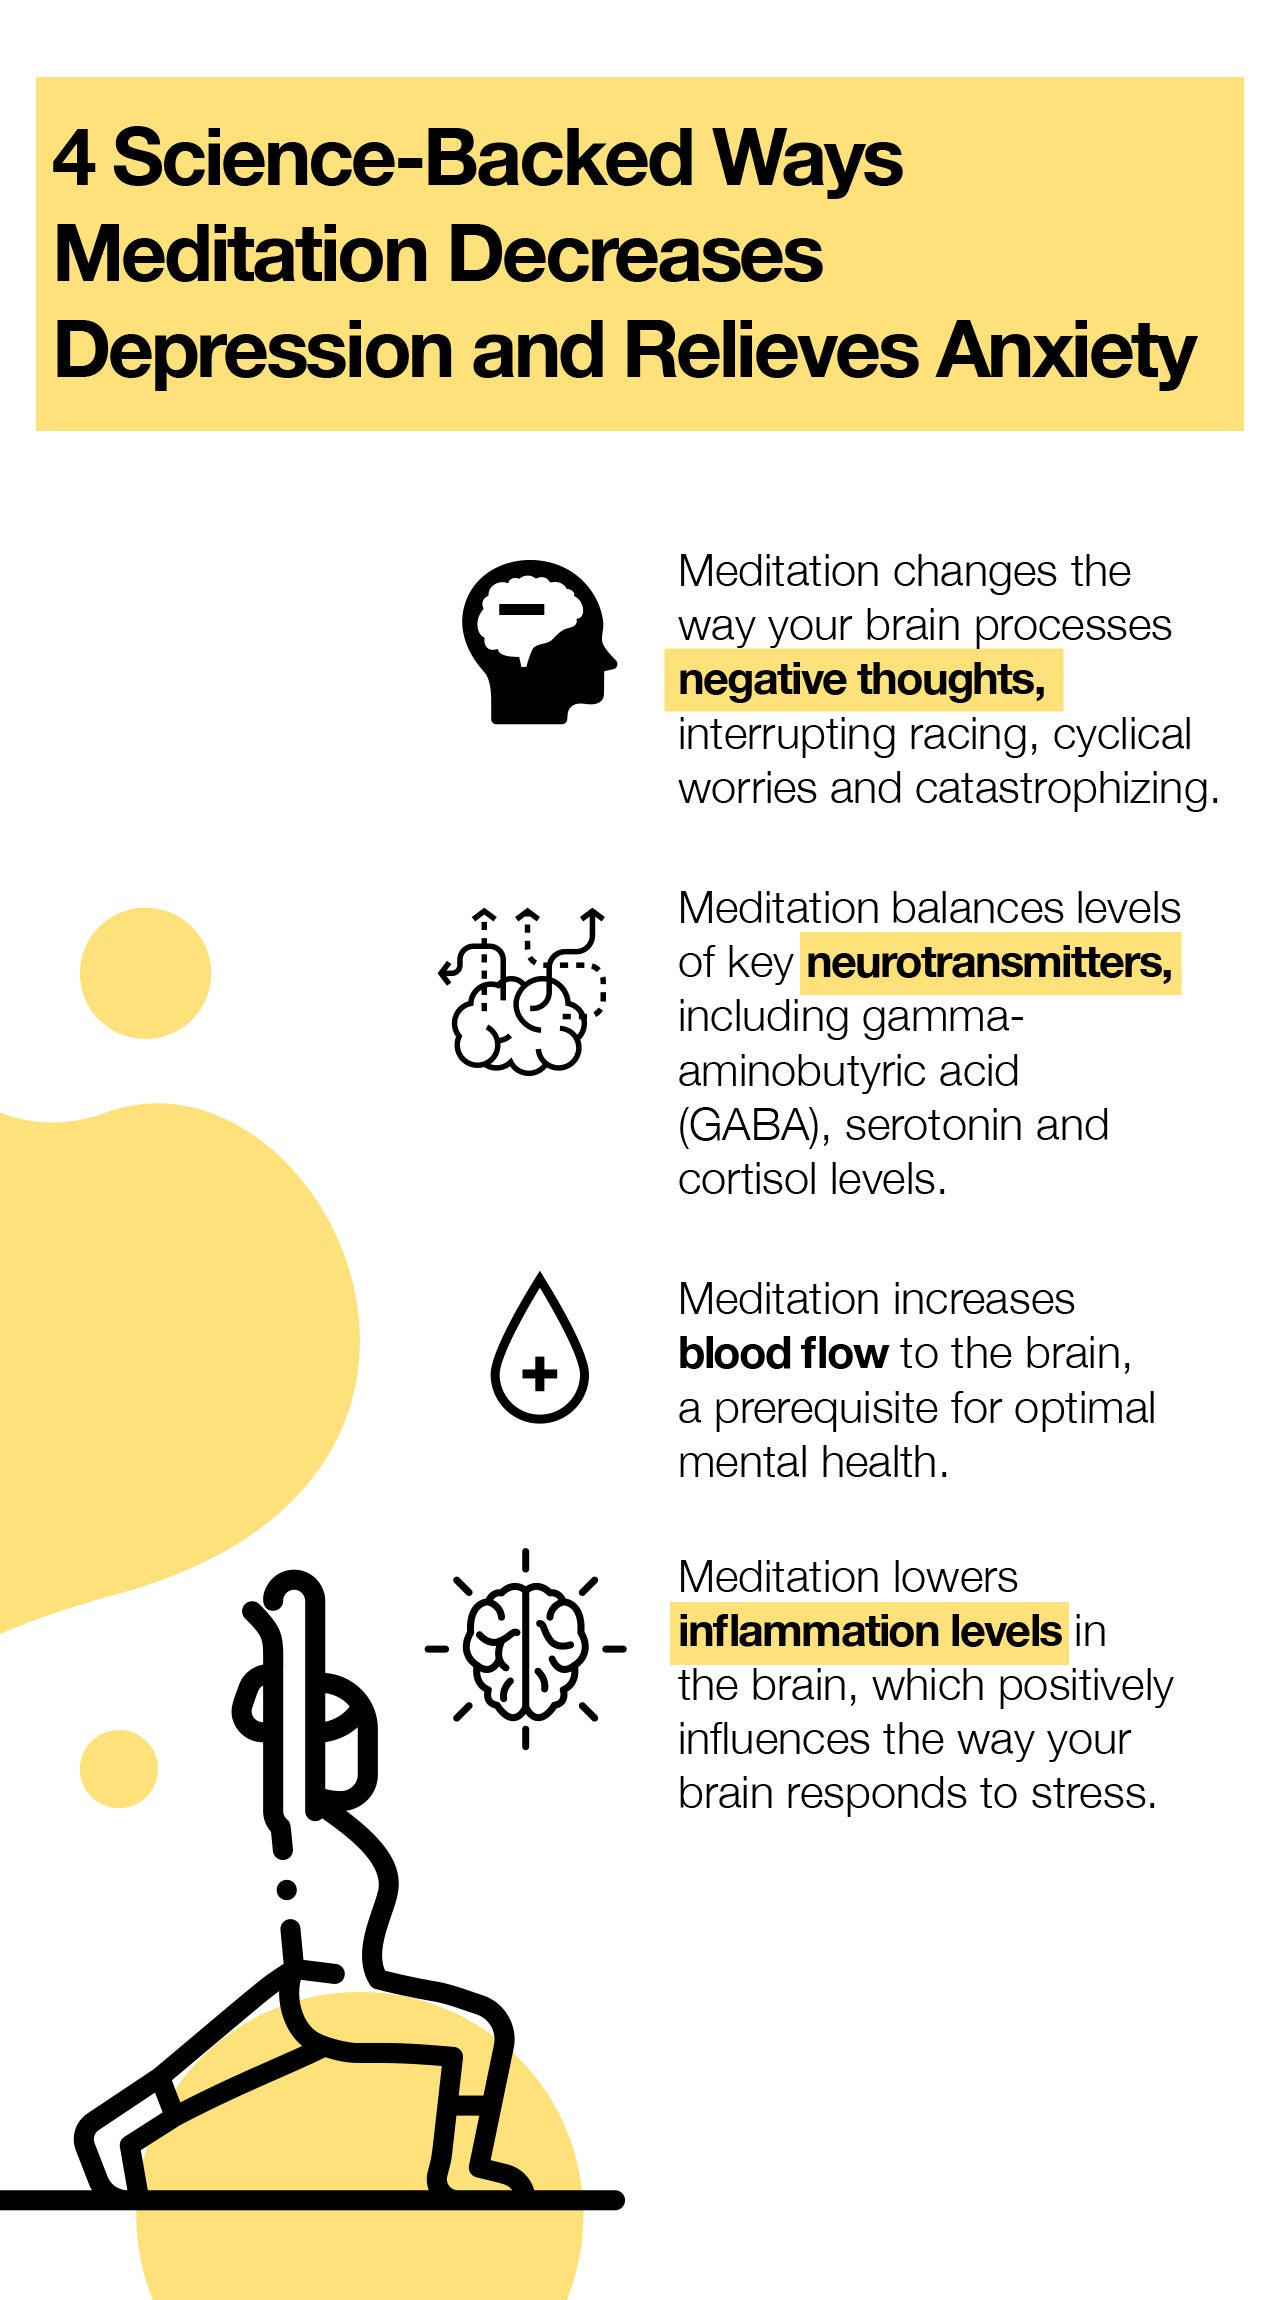 4 Science-Backed Ways Meditation Decreases Depression And Relieves Anxiety